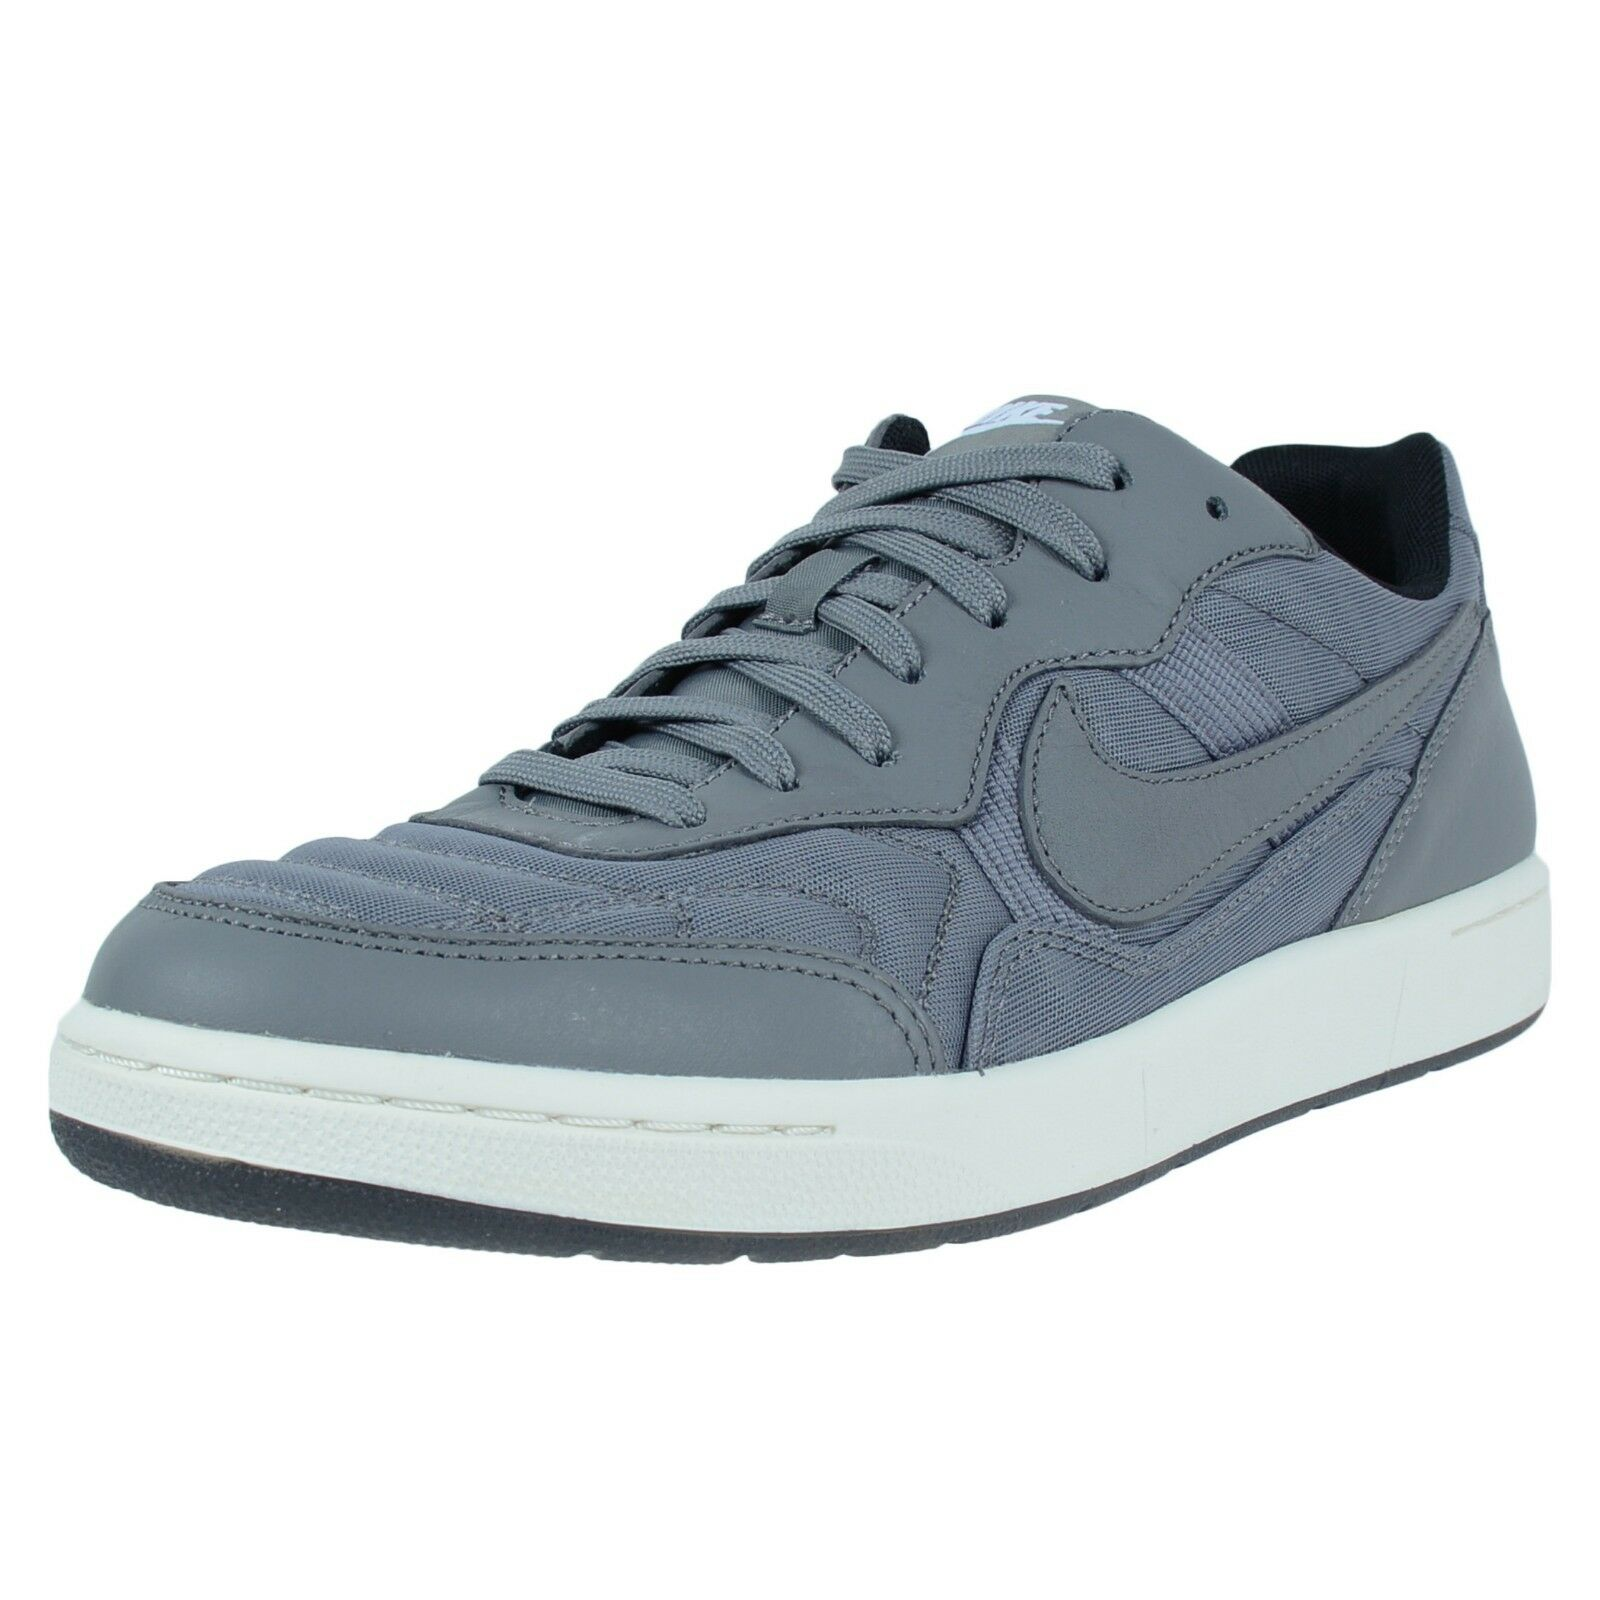 NIKE TIEMPO 94 MID FC SOCCER SHOES COOL GREY COOL GREY IVORY BLACK 685199 003 Cheap and beautiful fashion